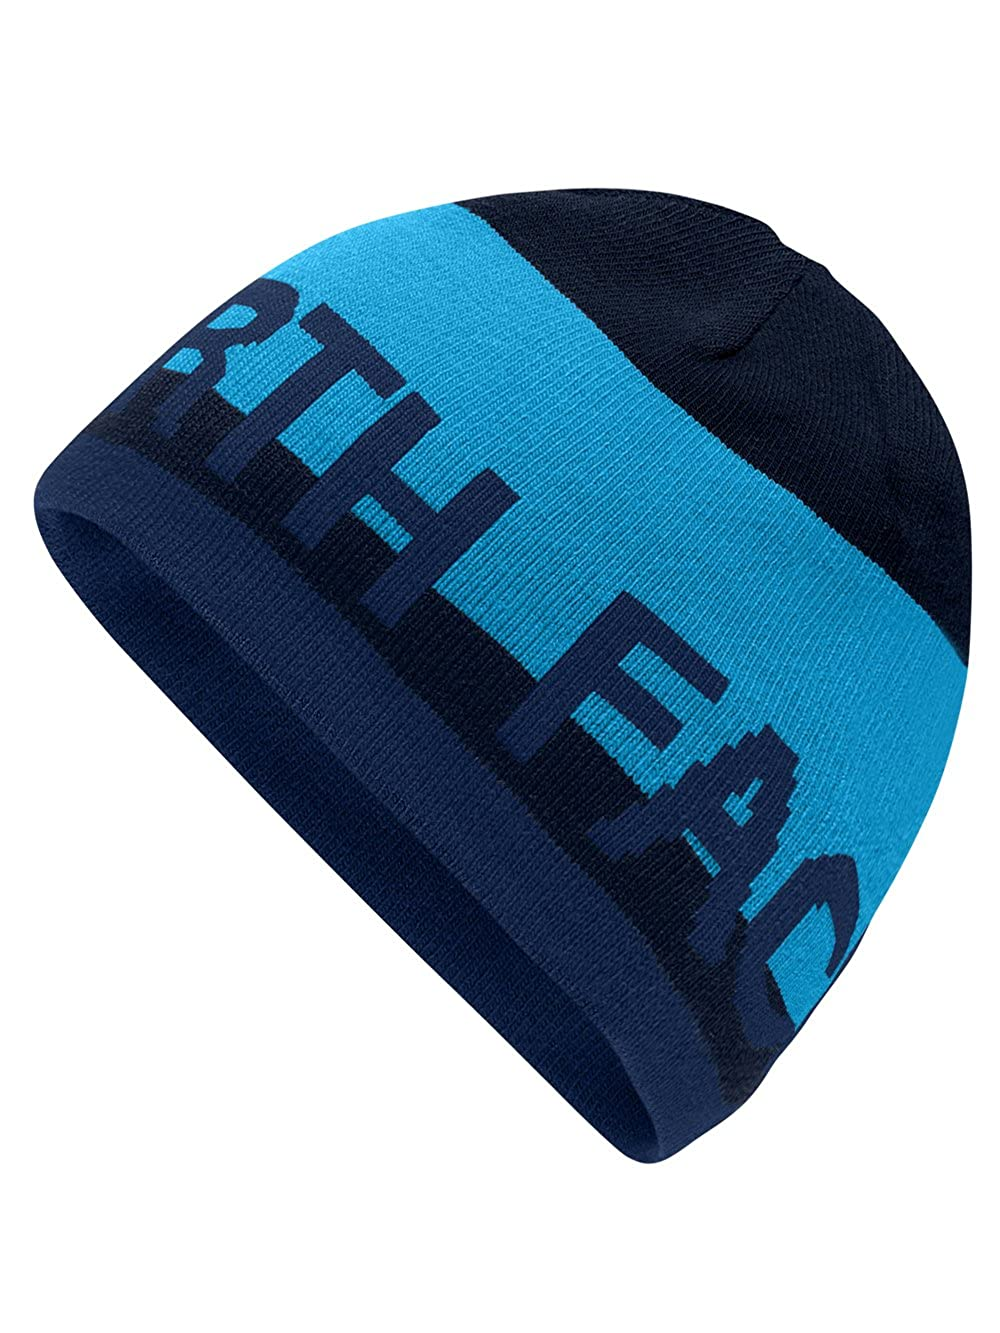 c4b50b5670c14 Amazon.com  The North Face Reversible TNF Banner Beanie  Sports   Outdoors